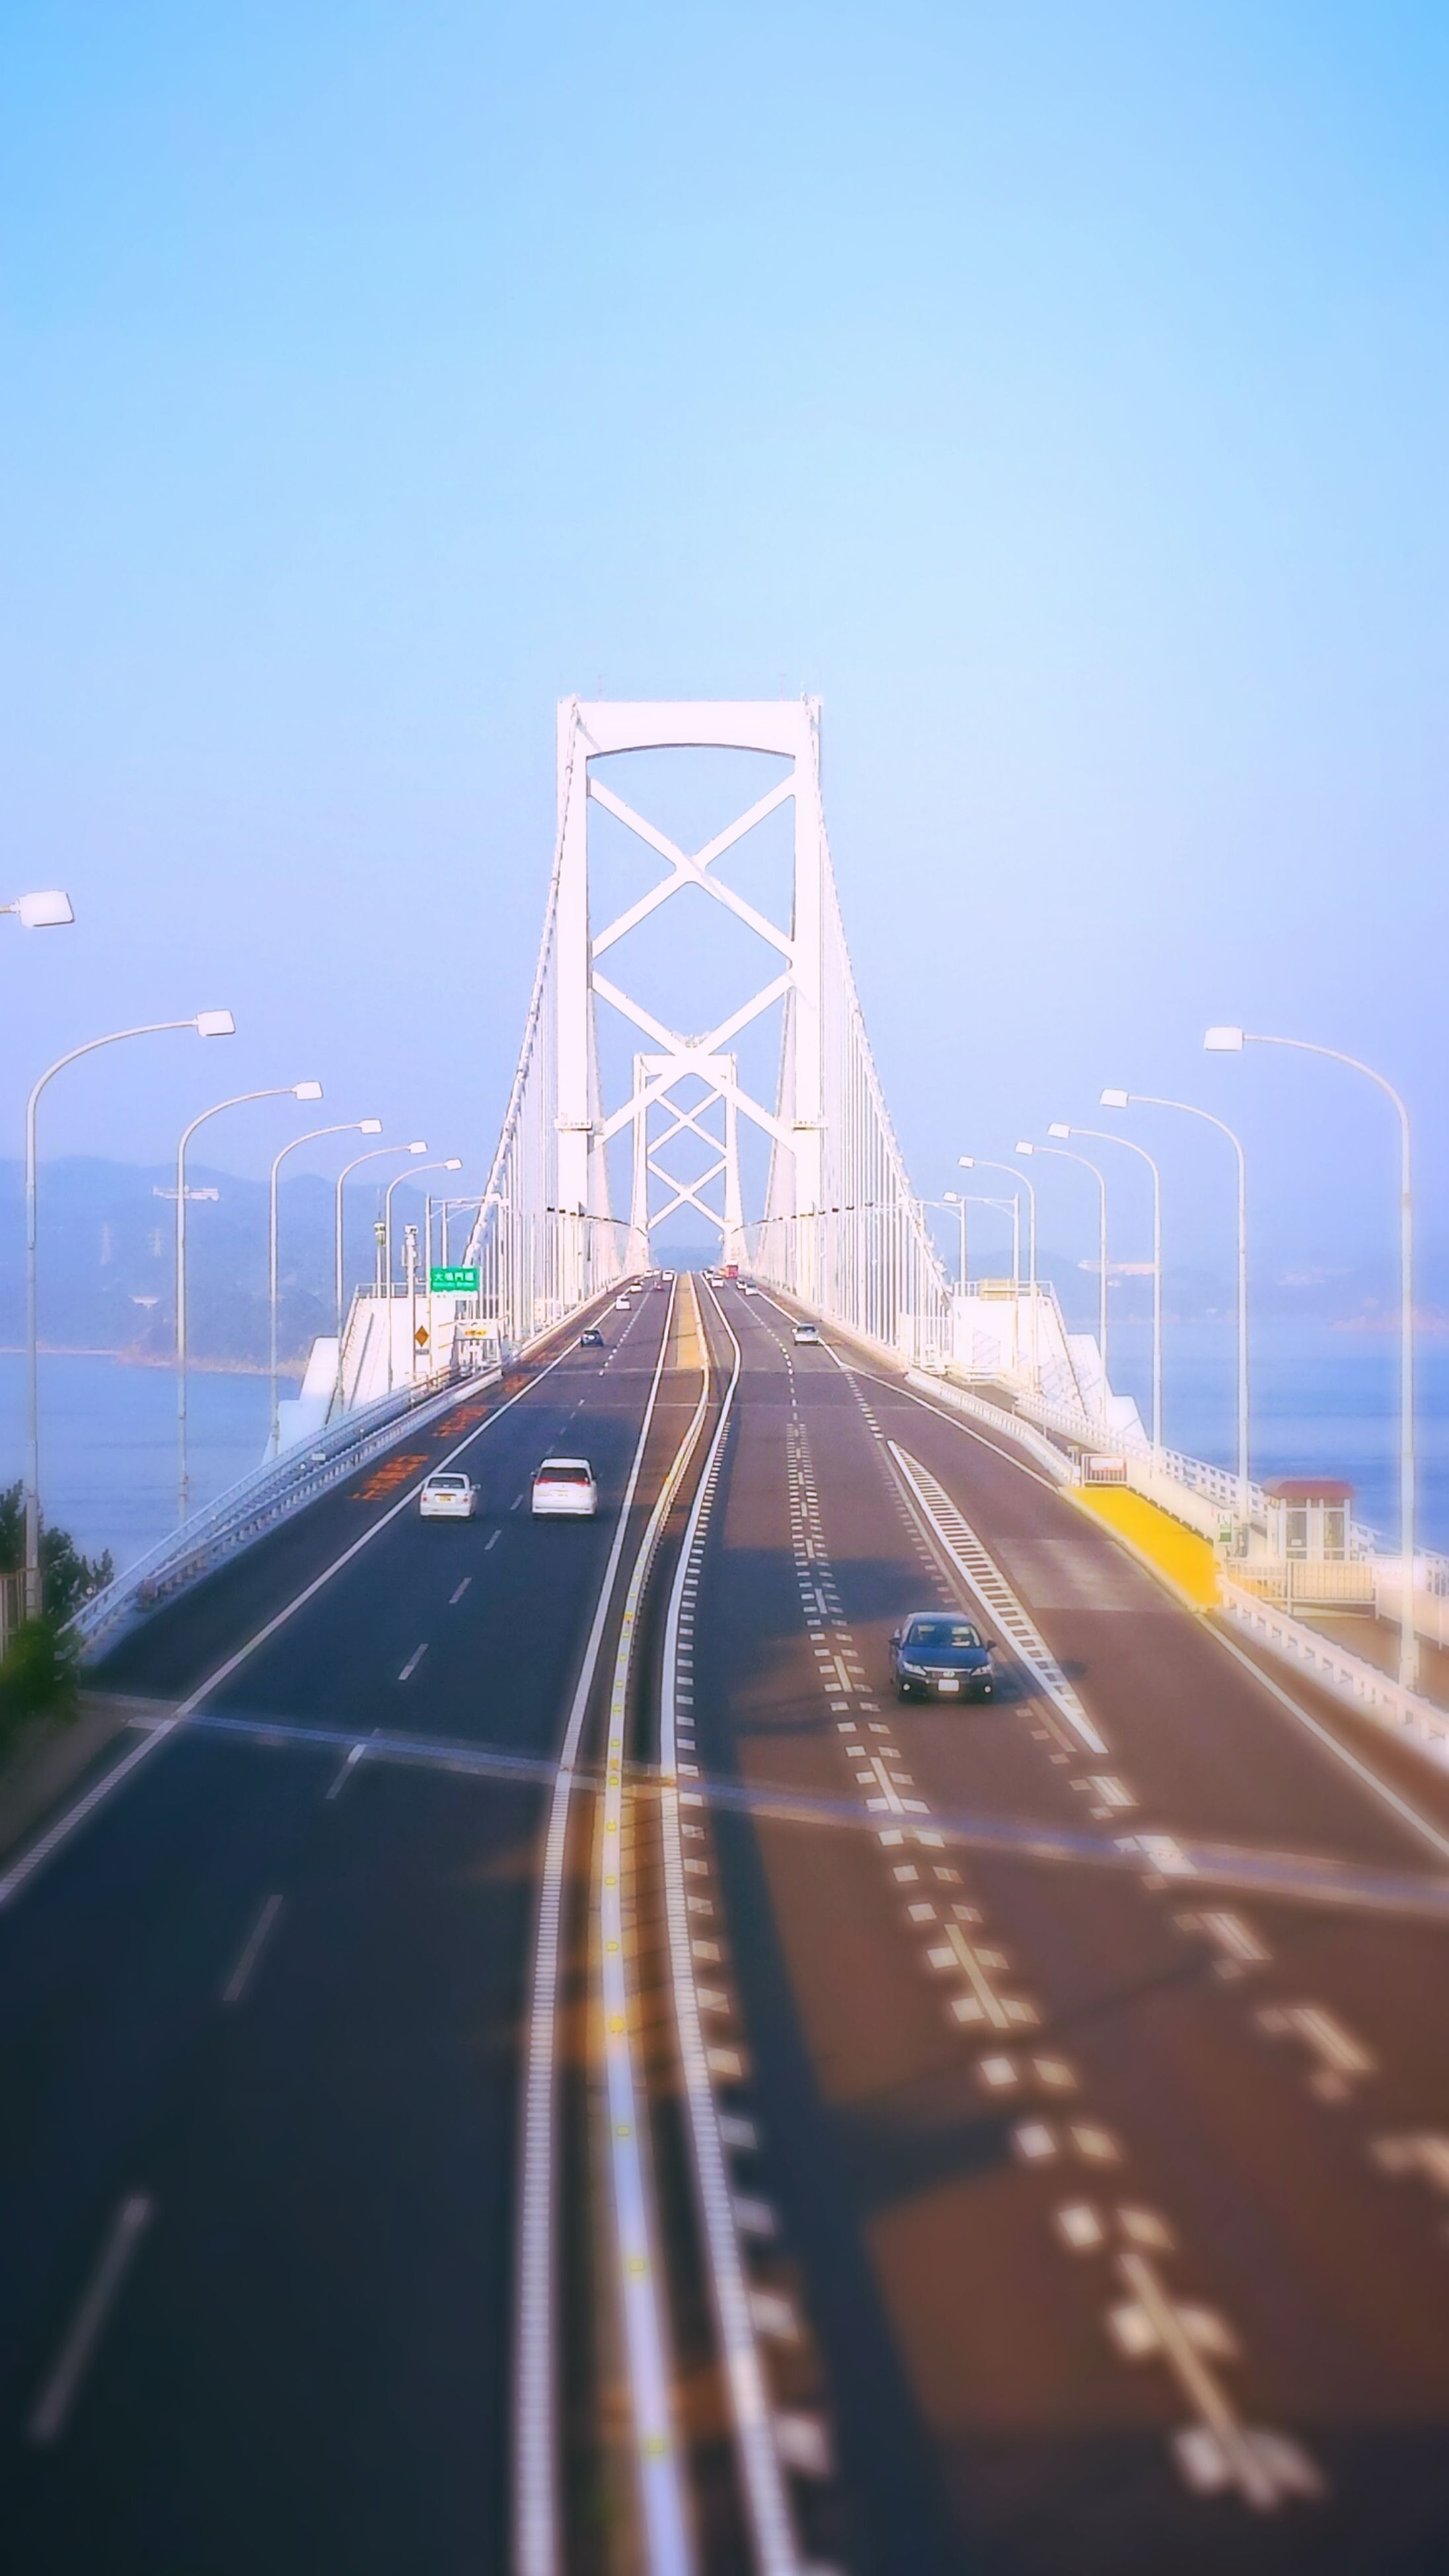 the way forward, transportation, clear sky, diminishing perspective, road, vanishing point, road marking, copy space, blue, street light, built structure, connection, empty, long, architecture, street, surface level, car, sky, bridge - man made structure